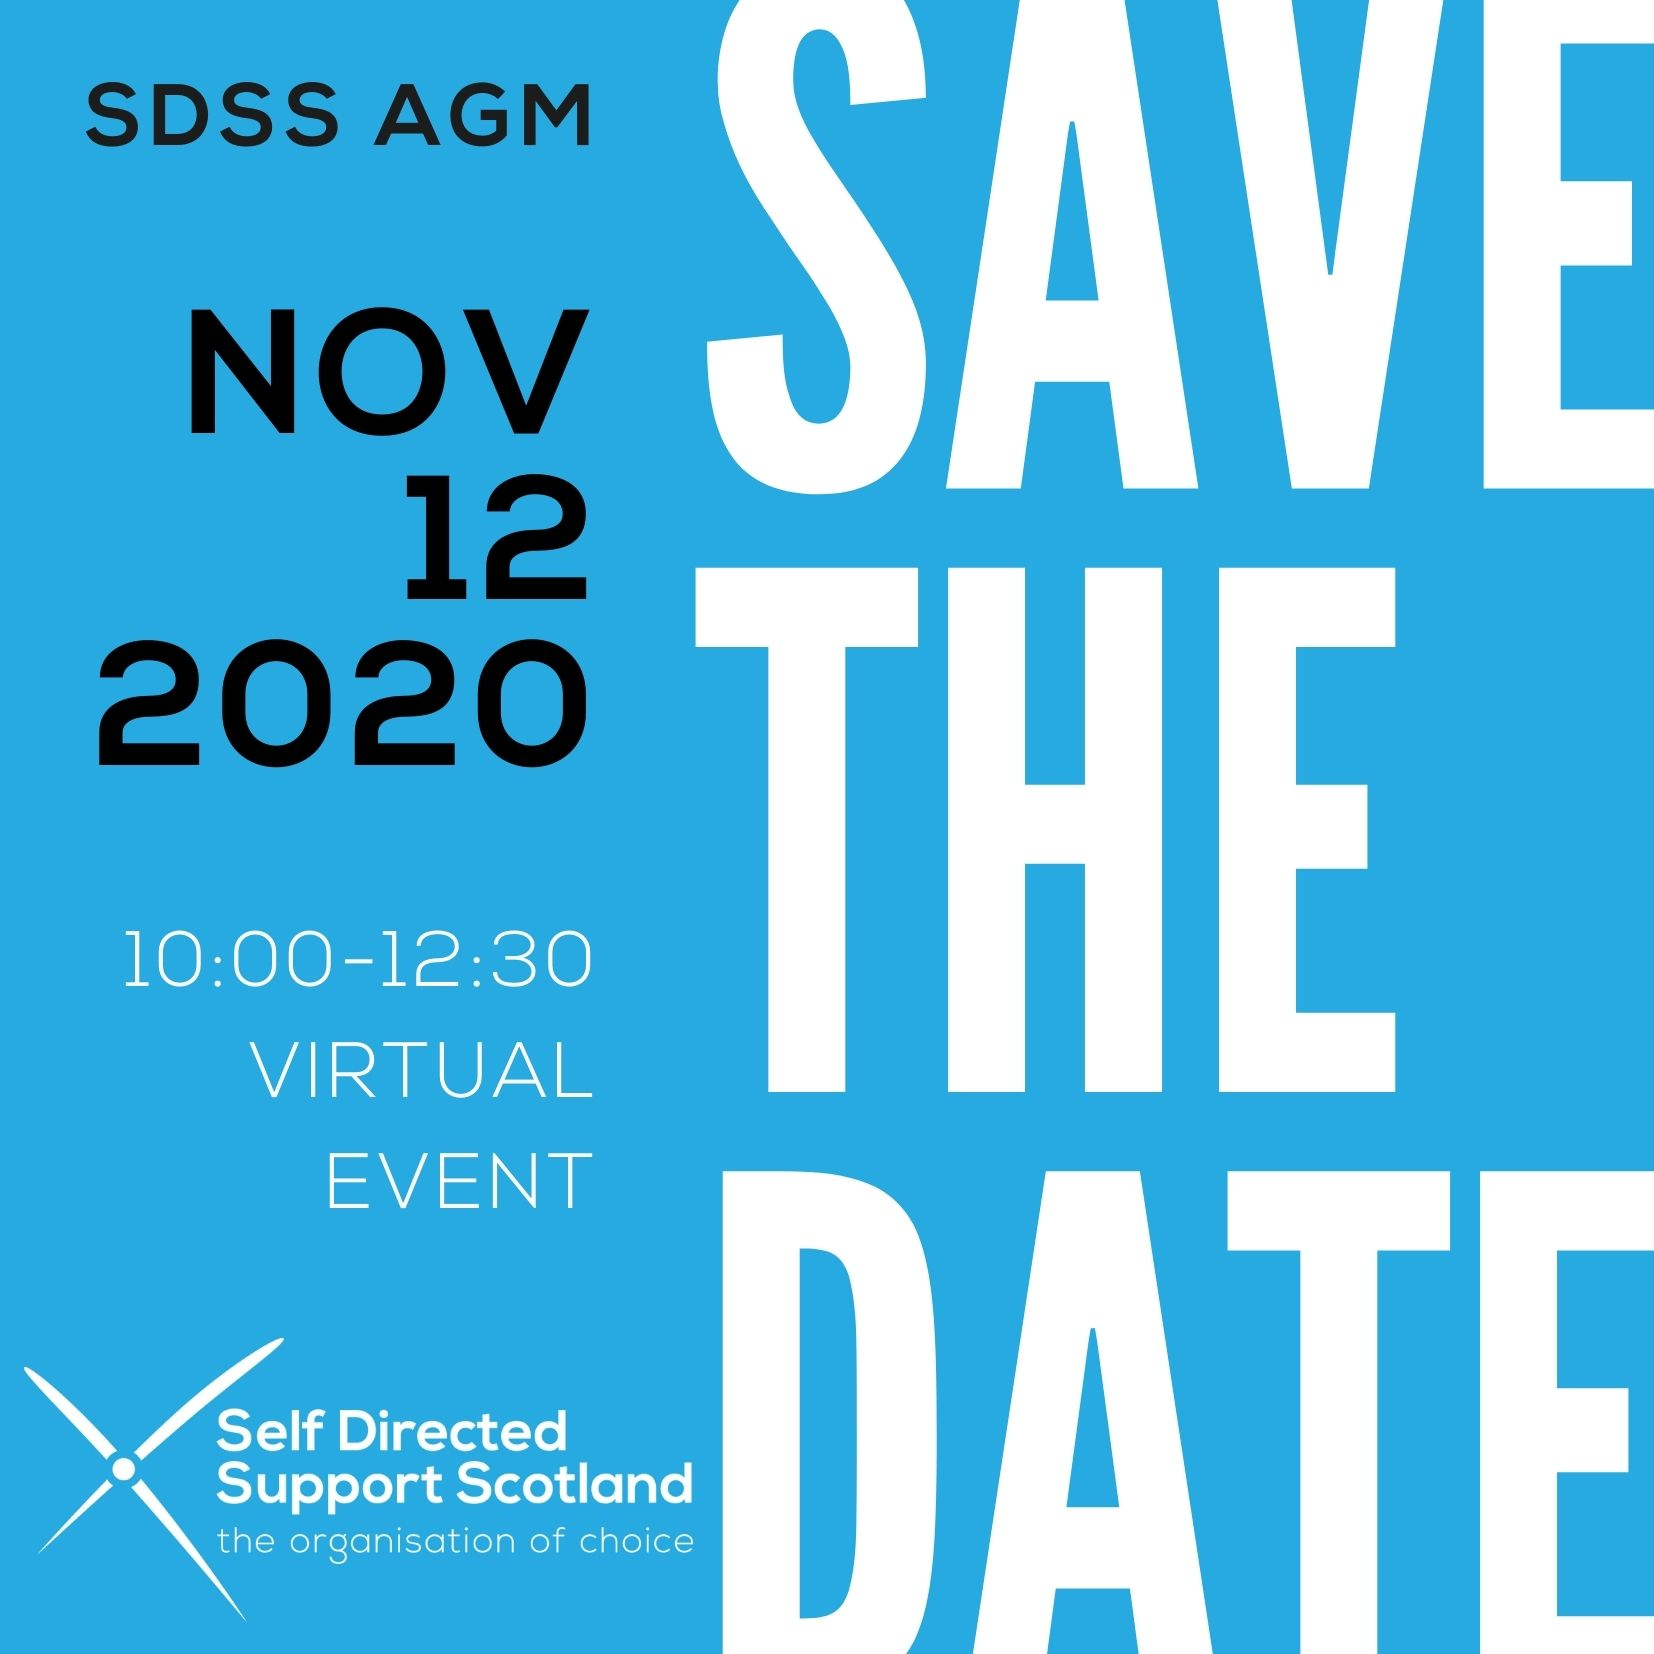 Save the date! SDSS AGM 2020. (Members only)